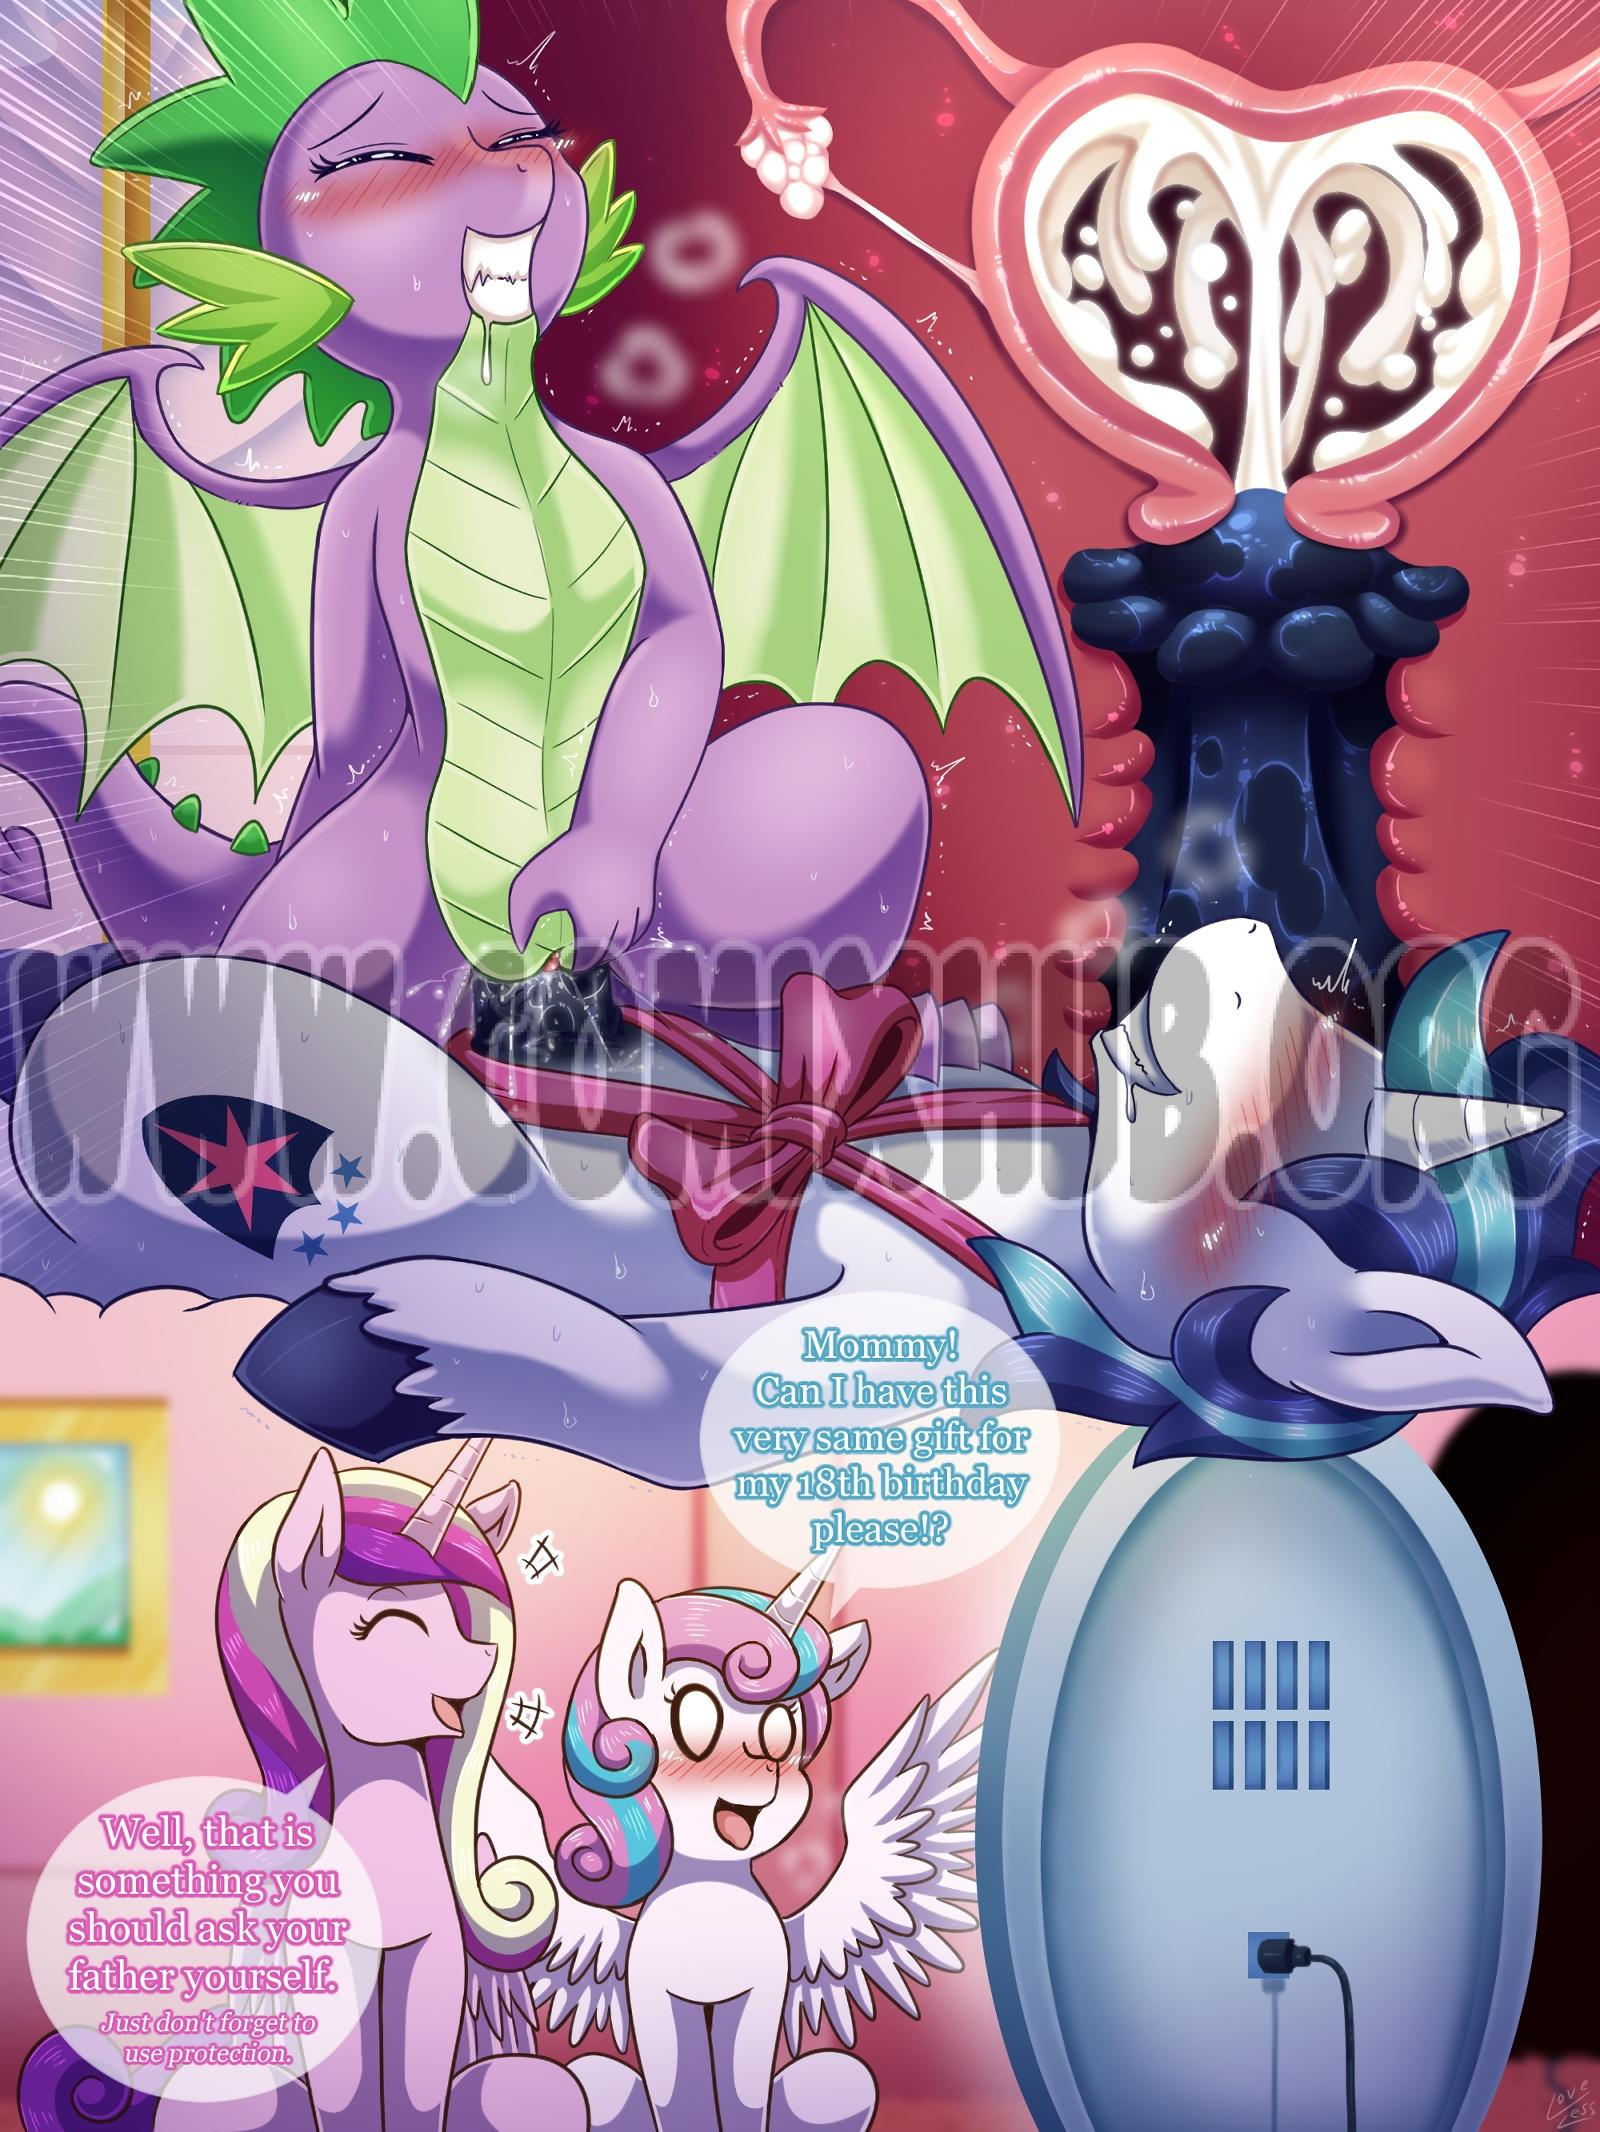 My Life As A Short Dragon 2 porn comics Creampie, Bestiality, Cosplay, Lolicon, Monster Girls, Robots, Rule 63, Stockings, X-Ray